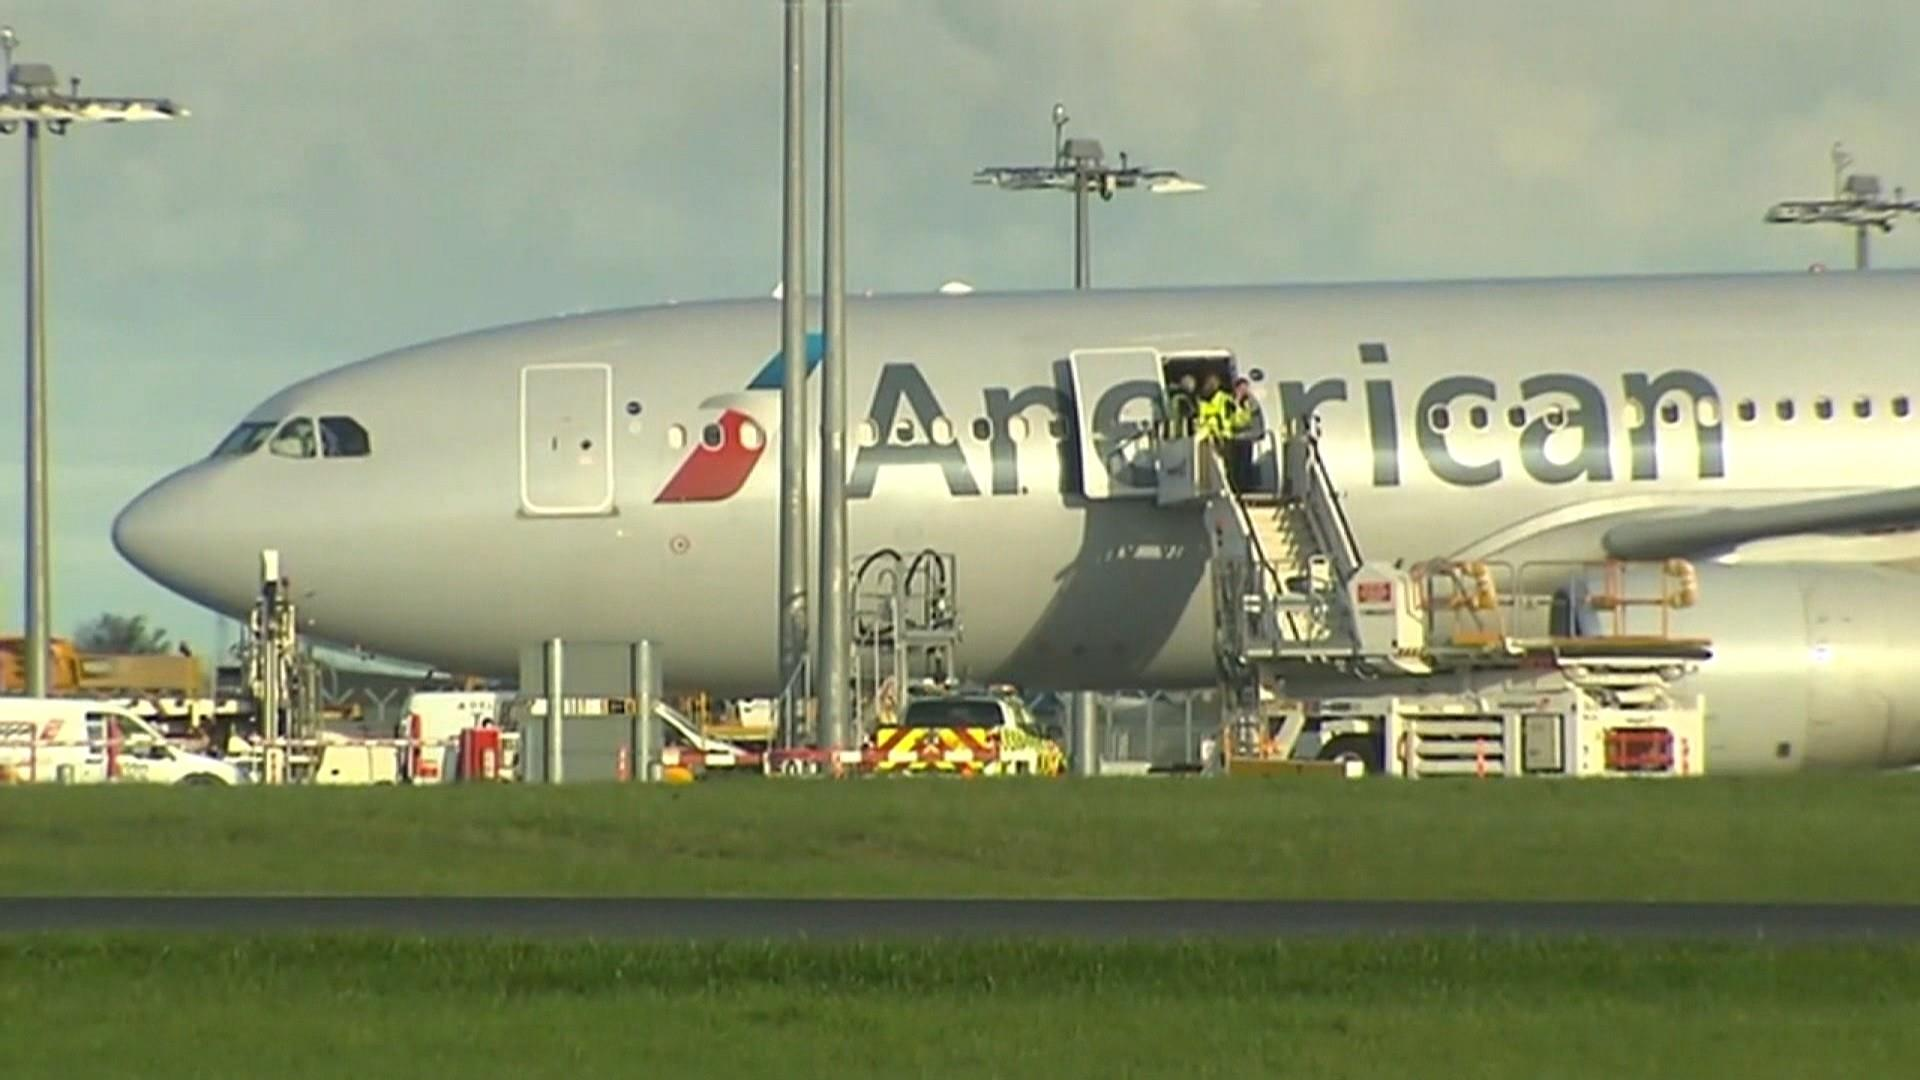 American Airlines flight makes emergency landing in Dublin after cleaning fluid spill in cabin